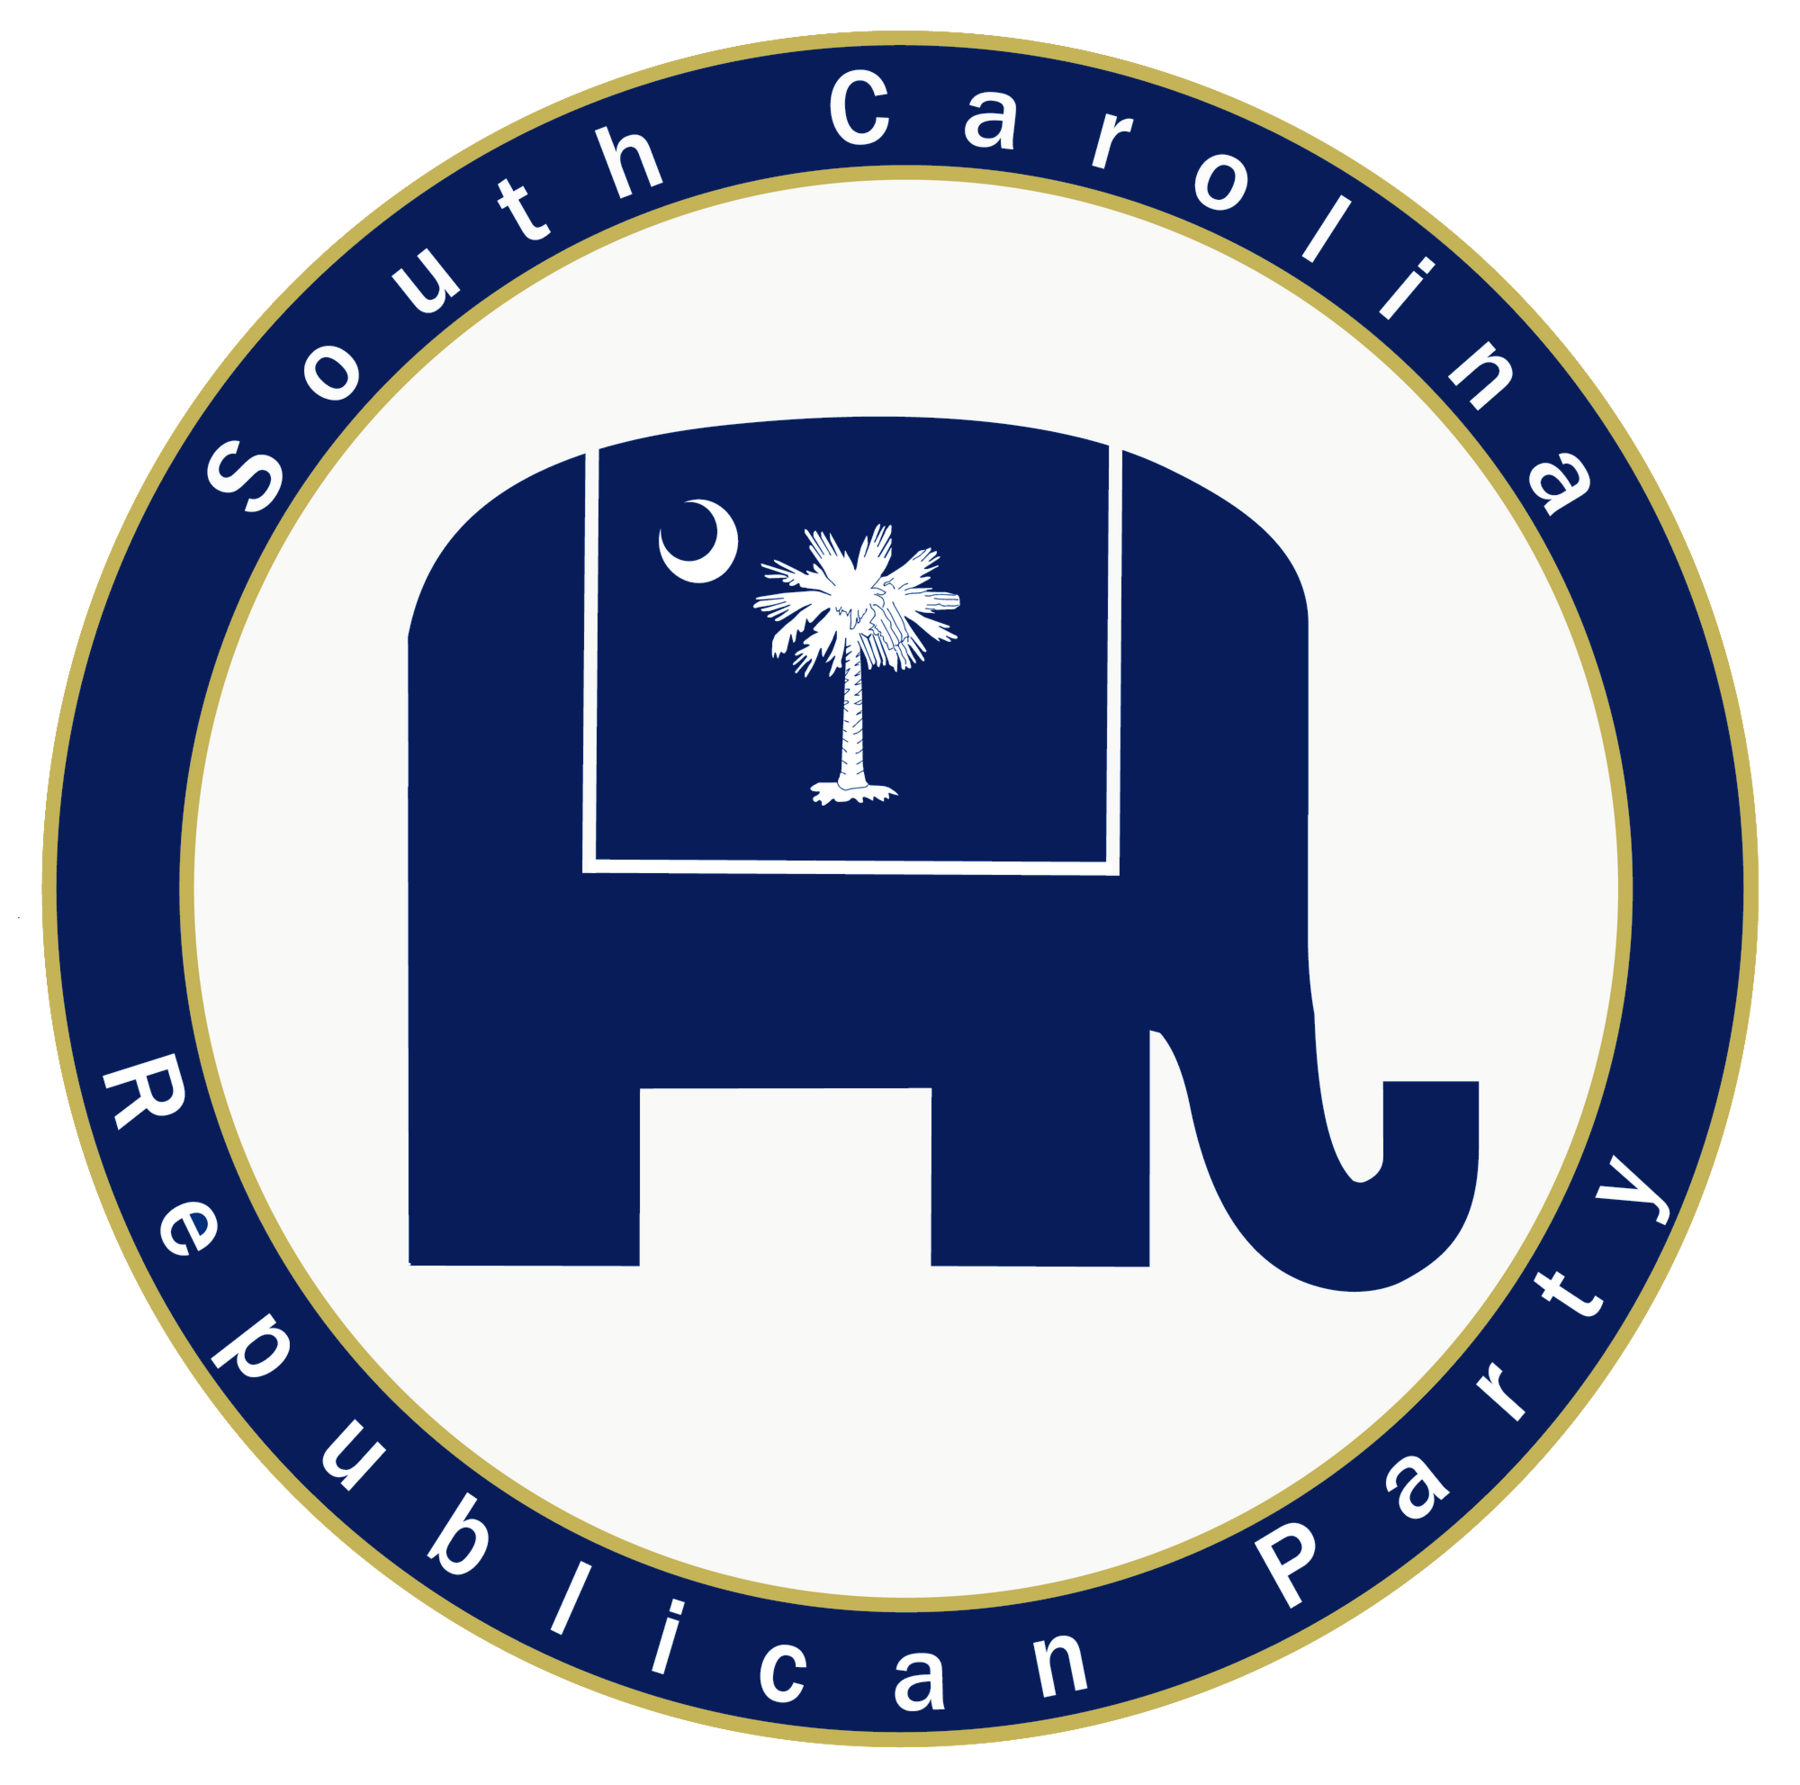 South Carolina Republican Party: Silver Elephant Club